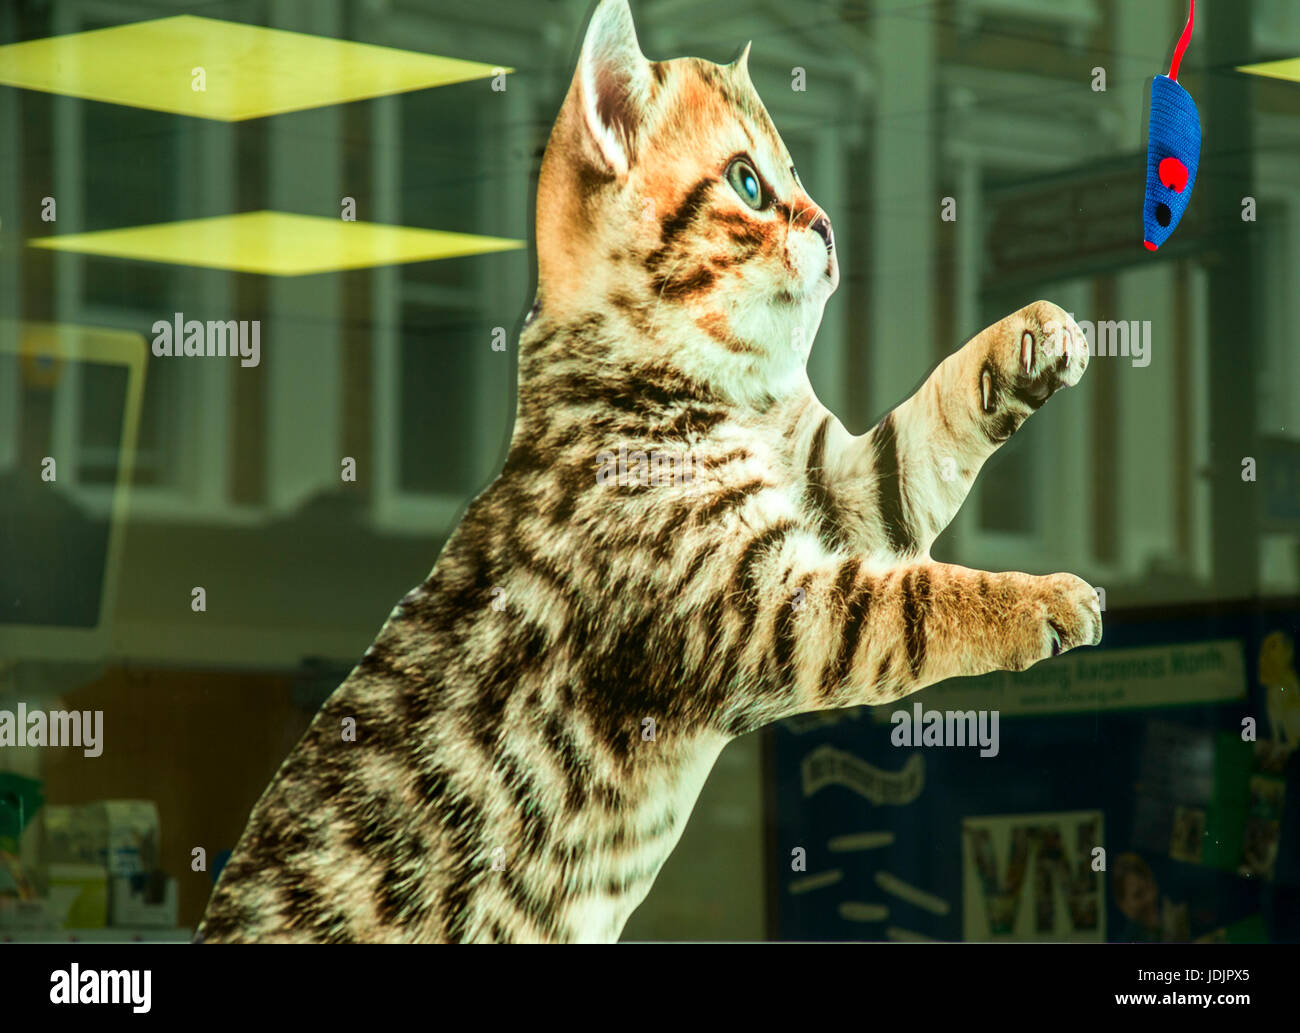 cat playing with toy mouse window sticker in veterinary window Stock Photo